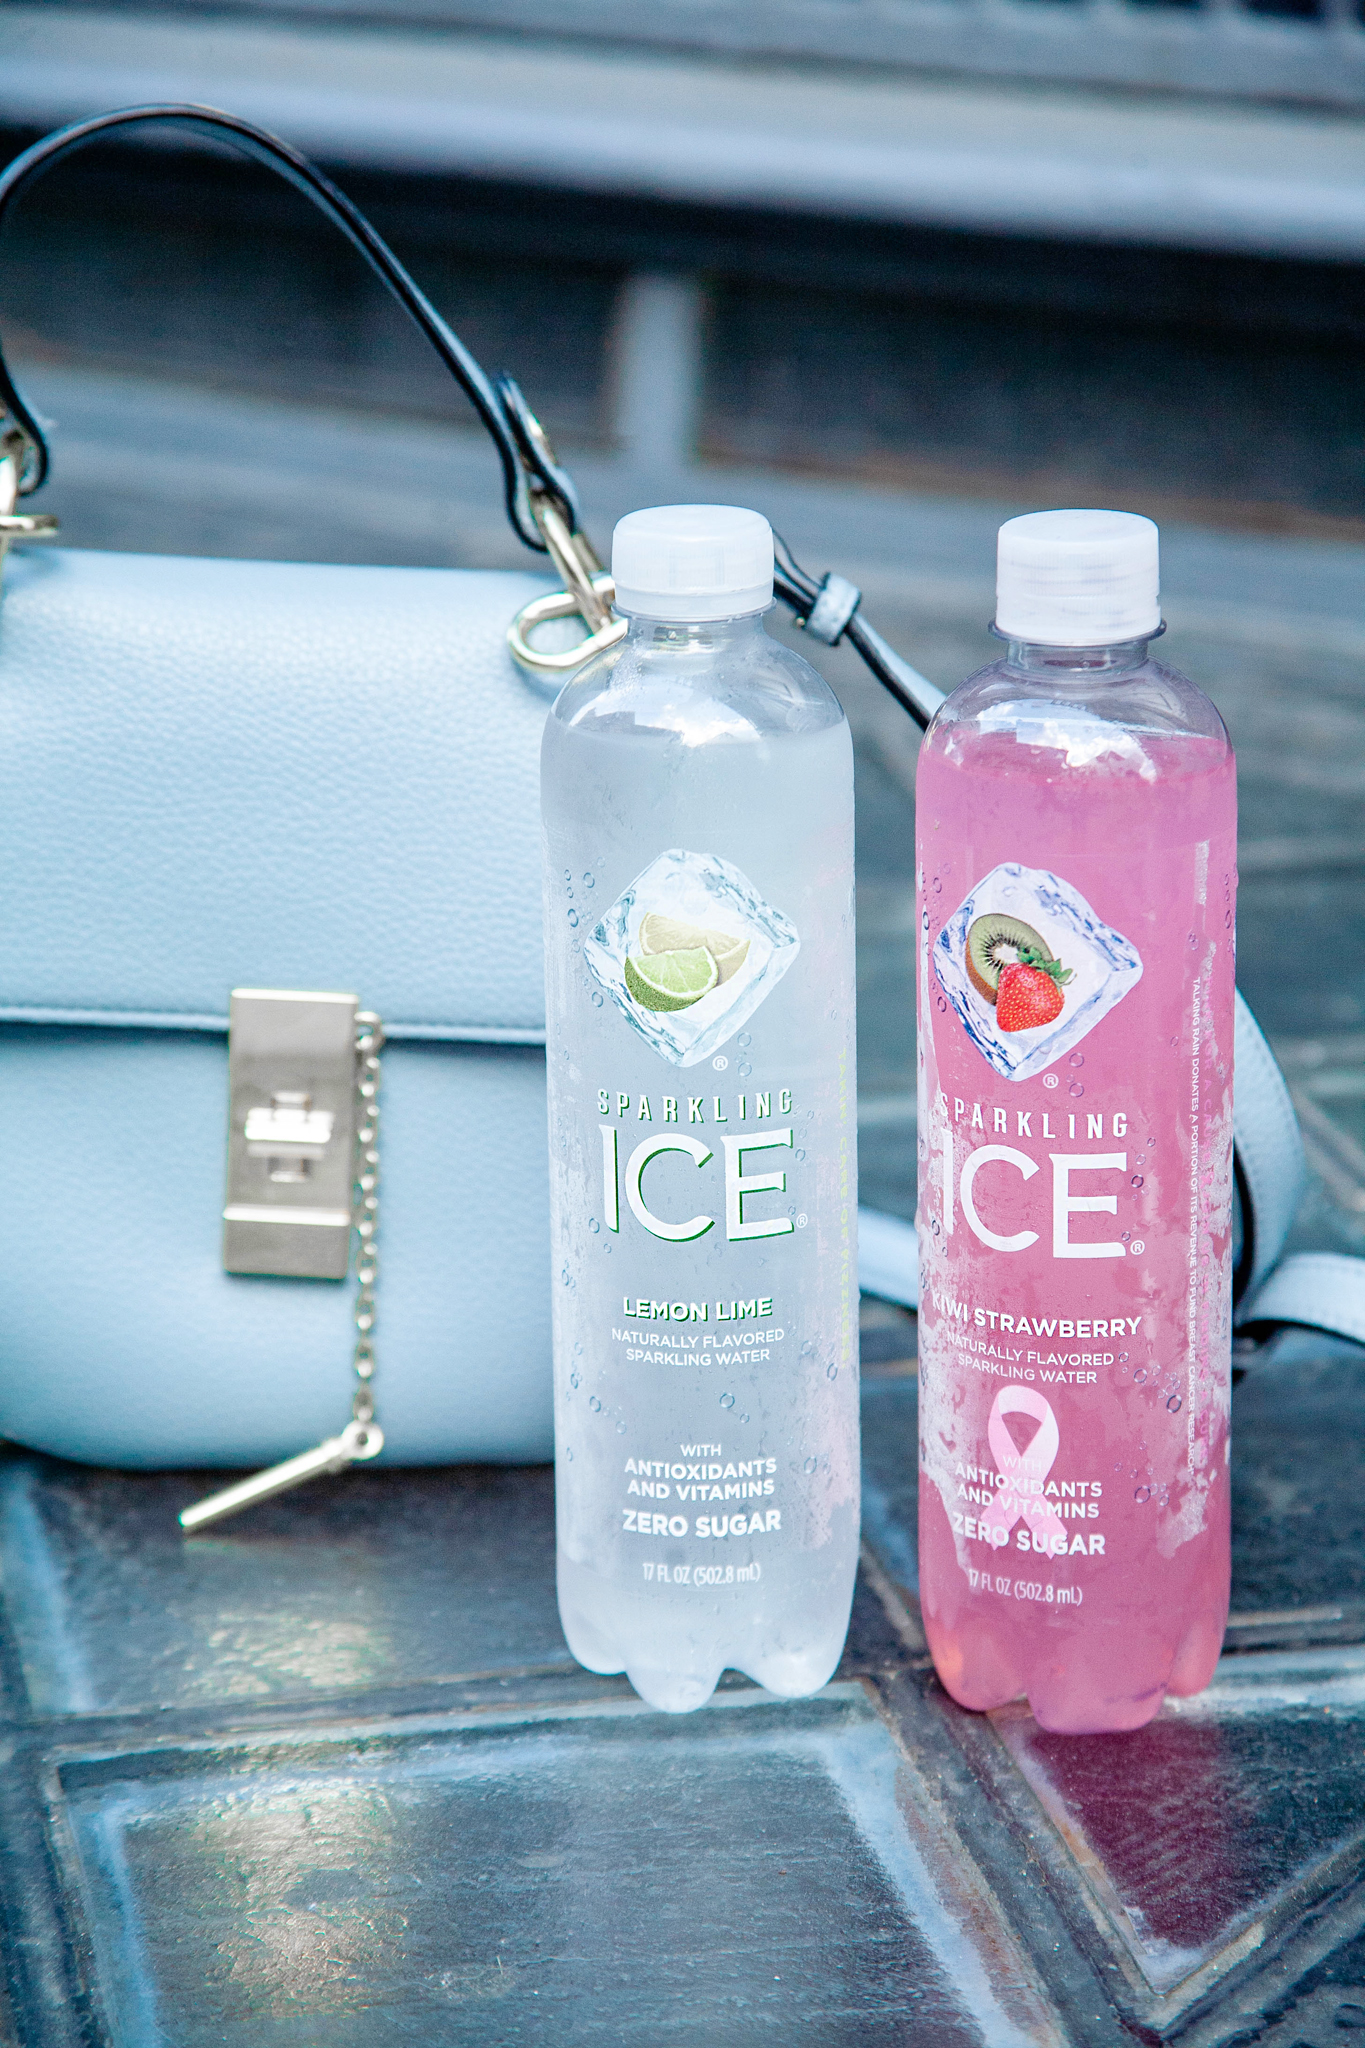 Sparkling ICE drinks